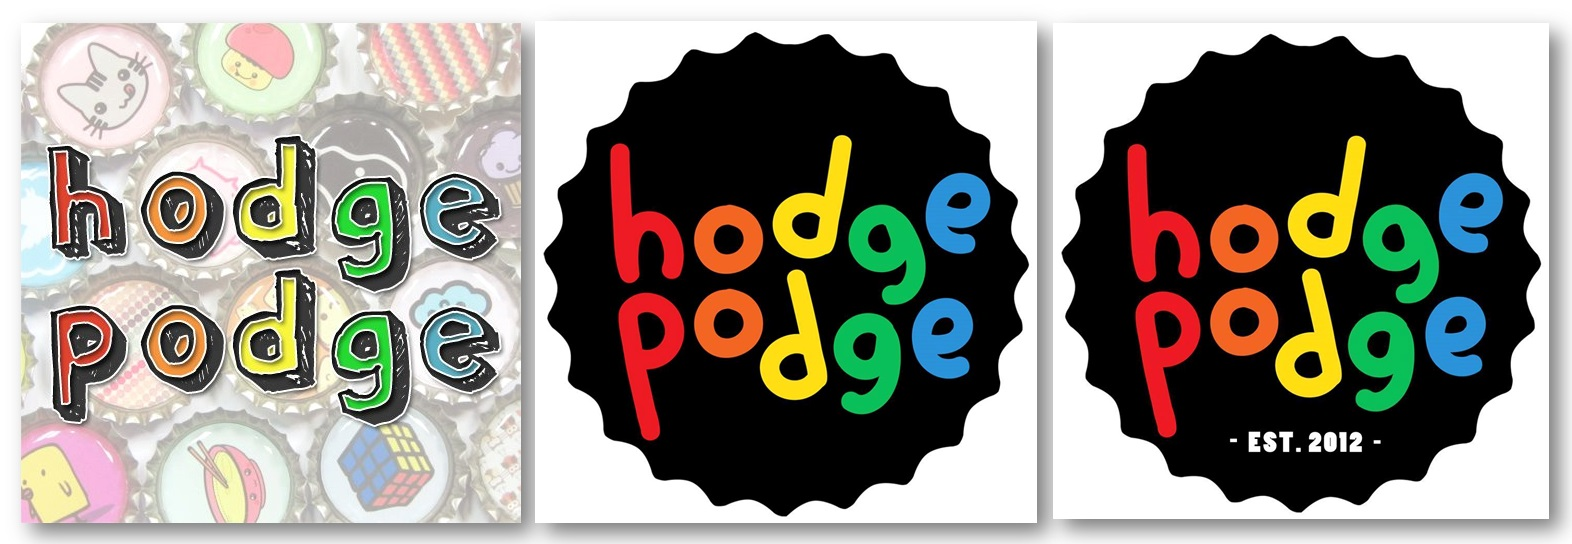 Combined Hodge Podge Facebook profile pictures since 2012. (c) Hodge Podge Facebook Page